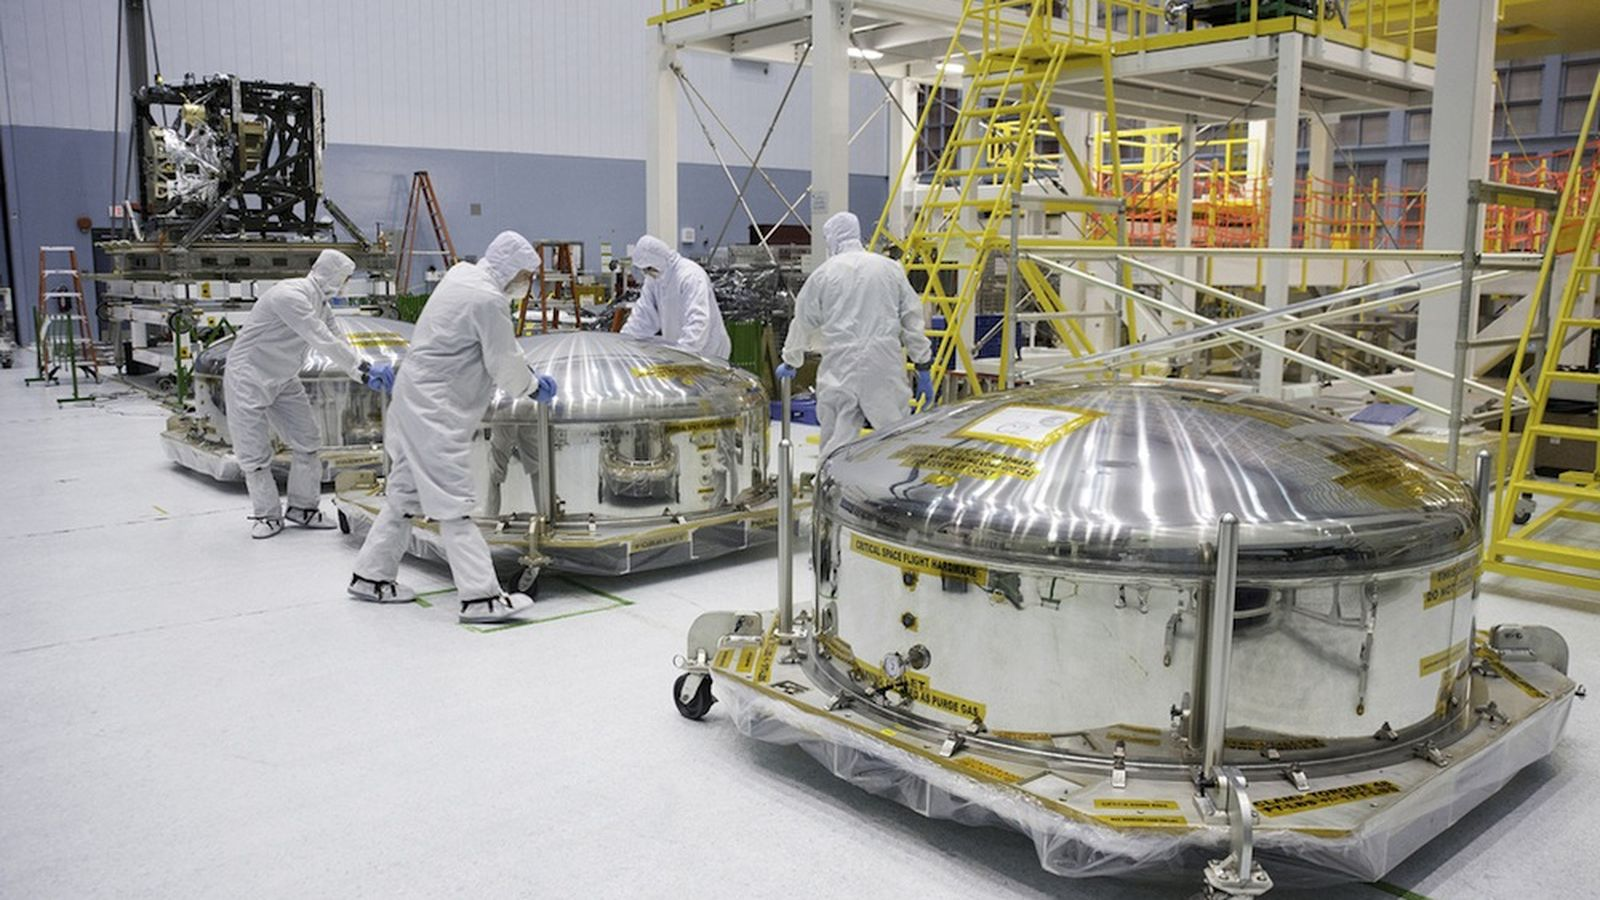 Example of a clean room Photo: theverge